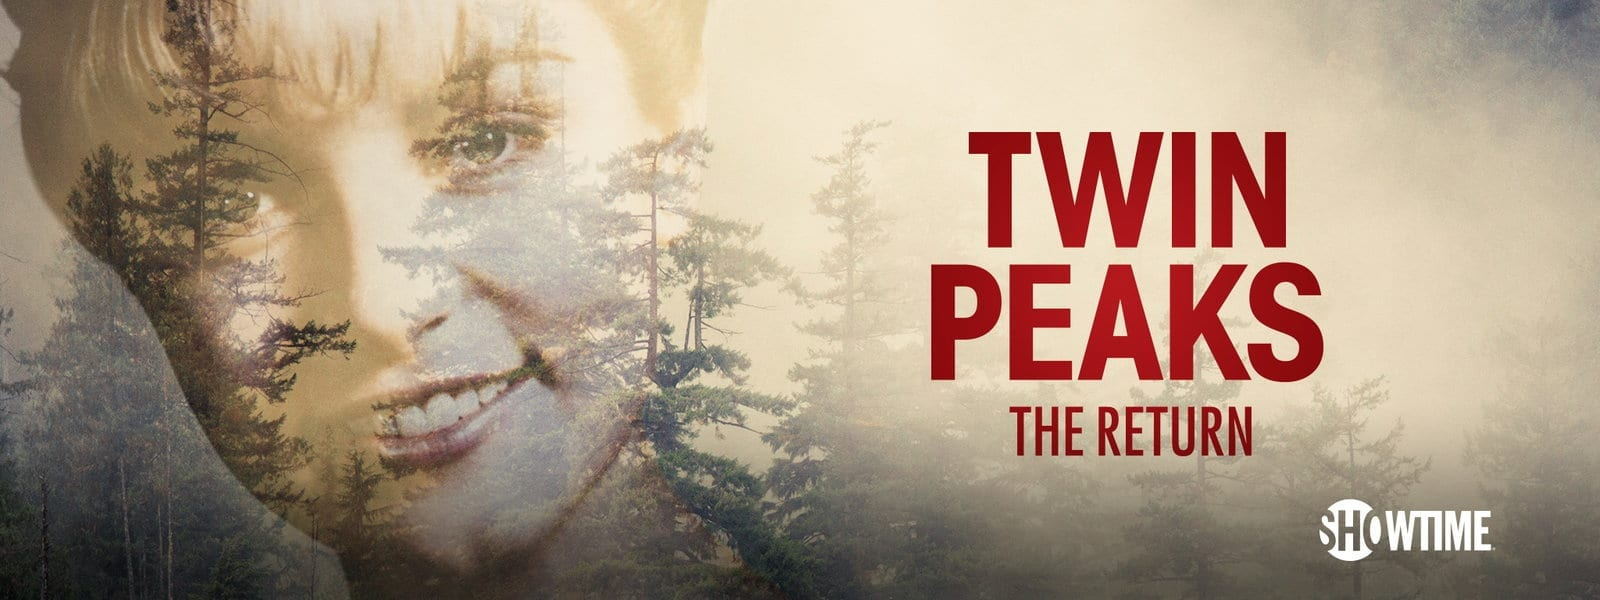 Twin Peaks: Is The Return Ushering In A New Age Of Cinematic Television?